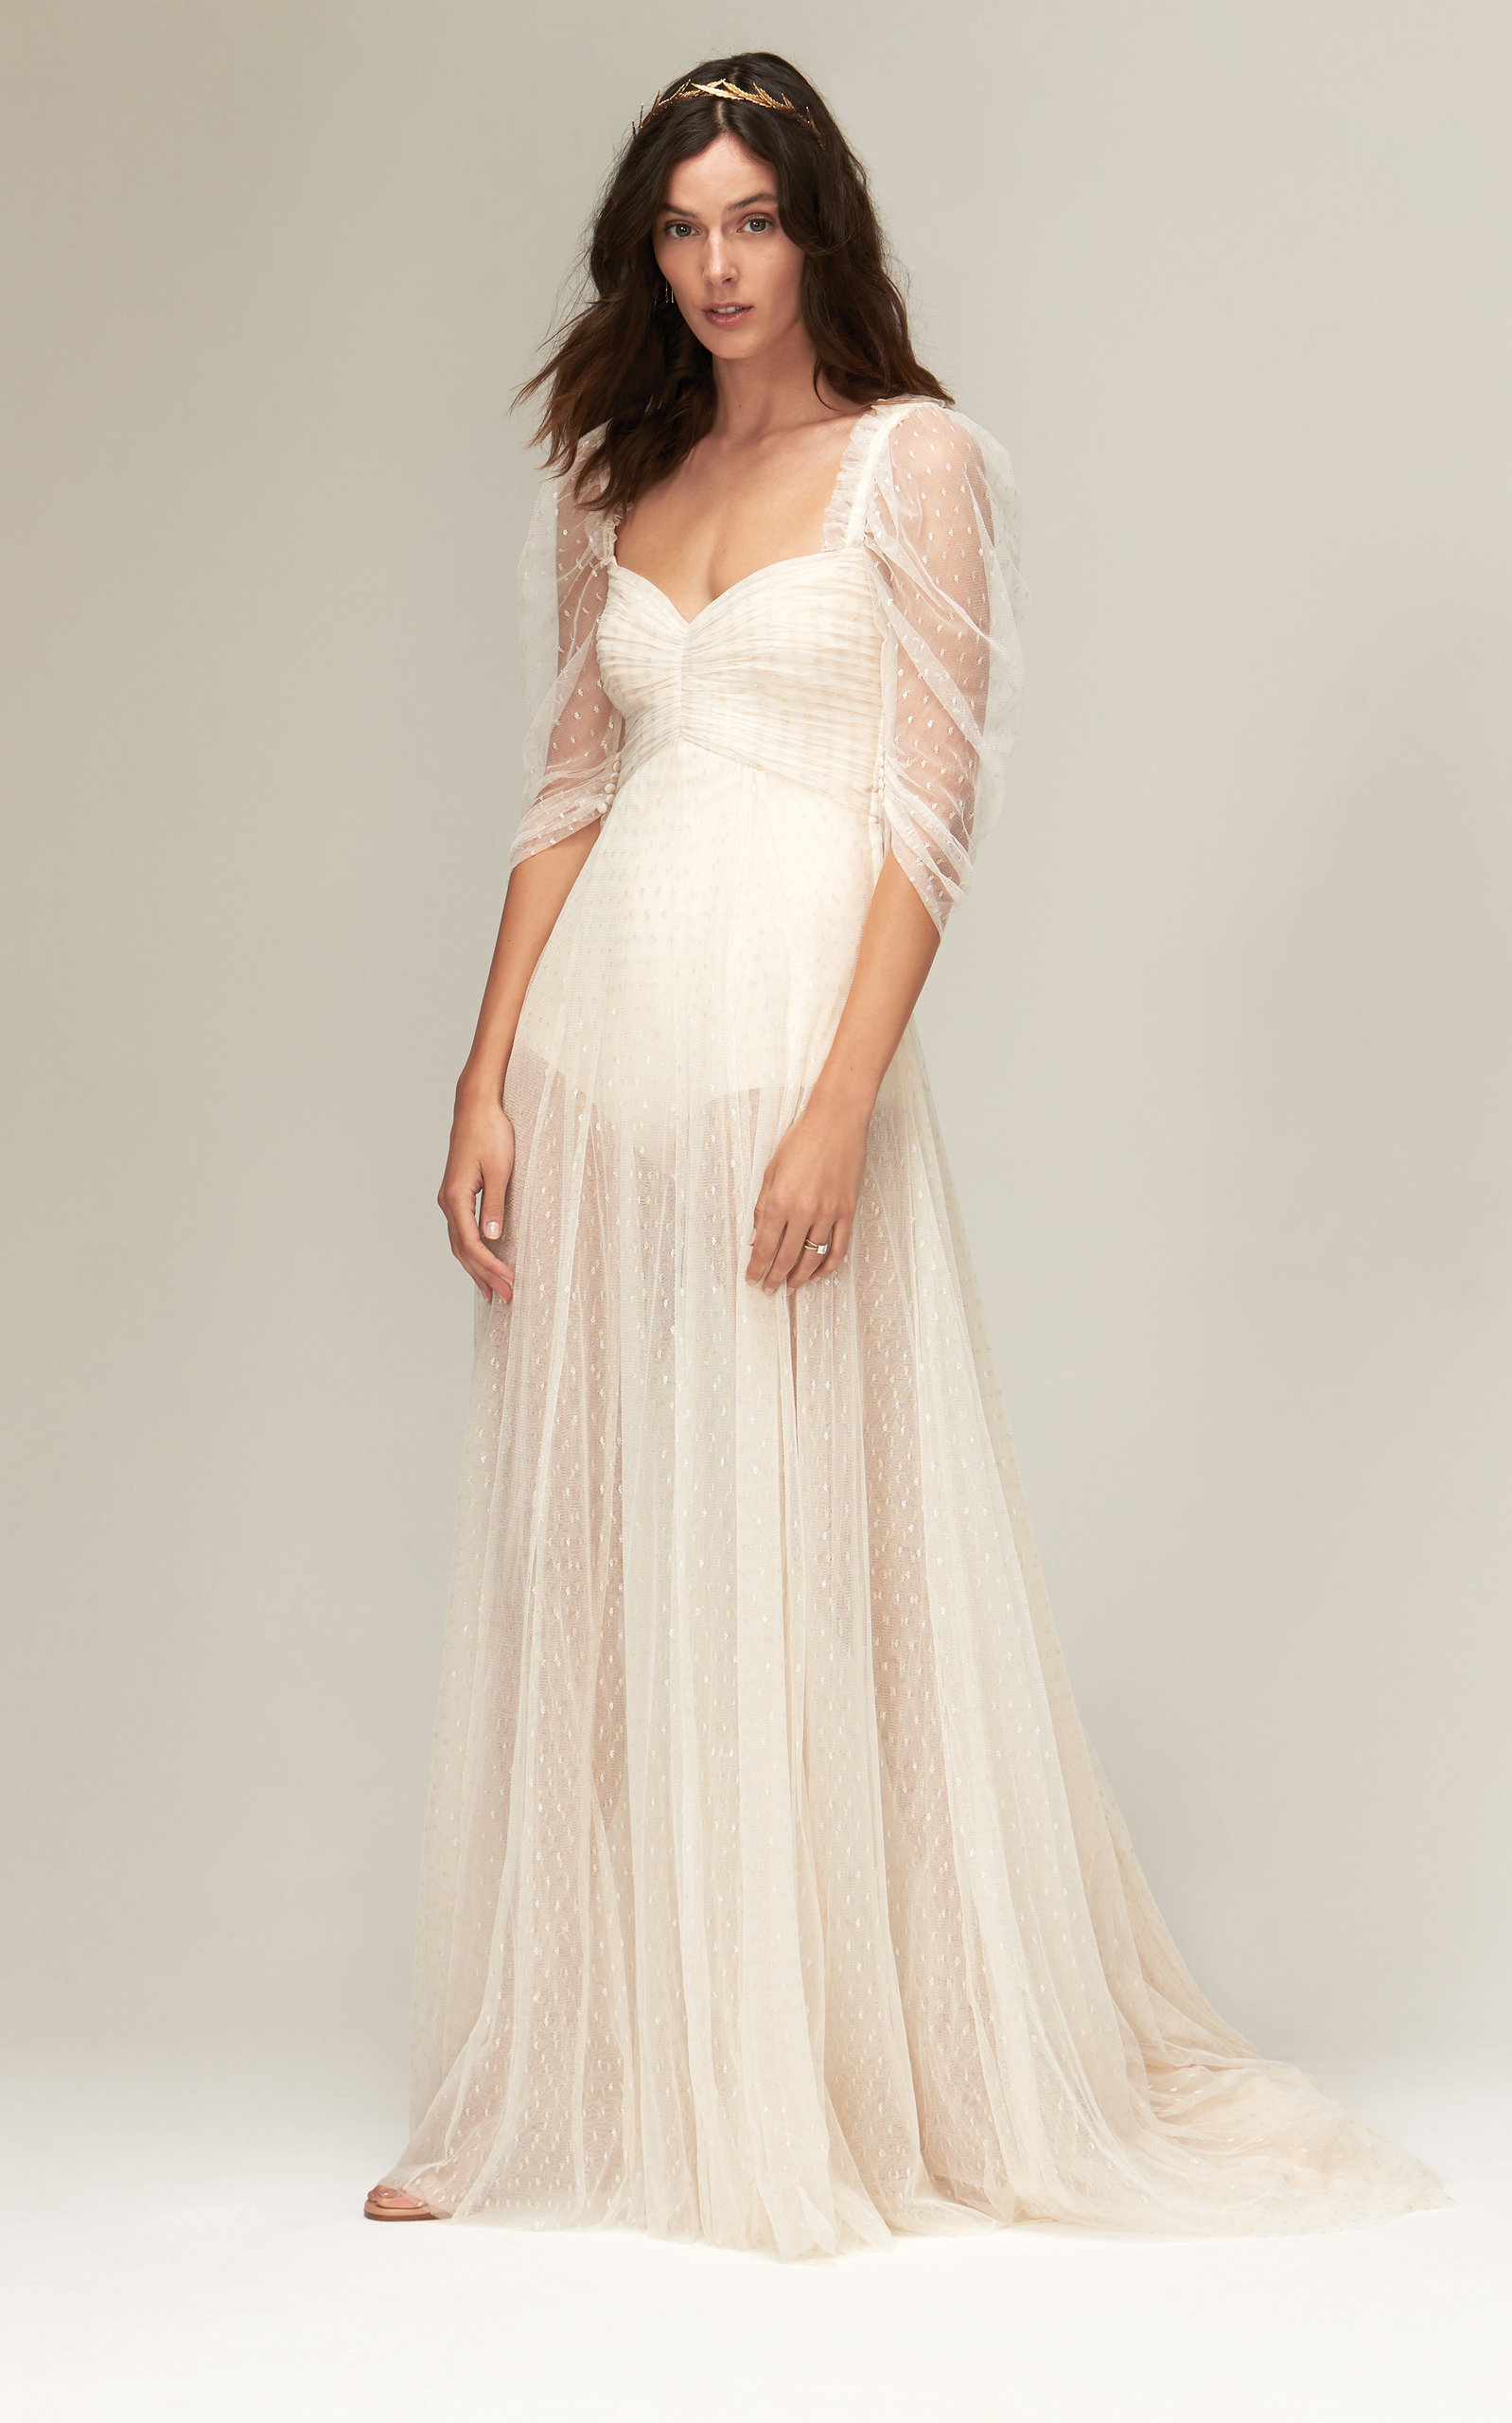 Savannah Miller - Clara Metallic Spot Tulle Gown With Transparent Puff Sleeve